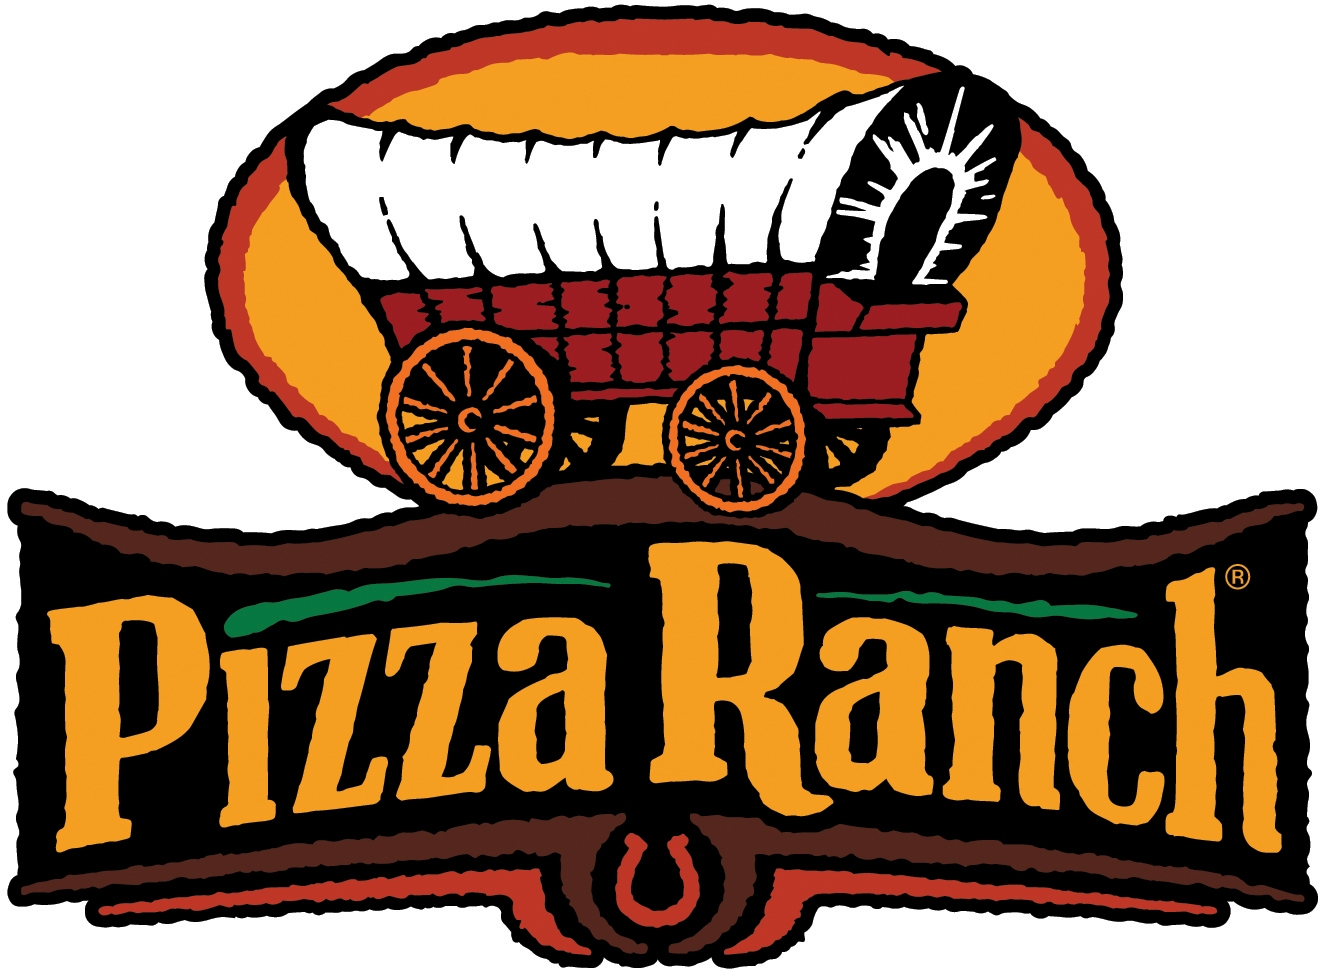 Pizza Ranch2